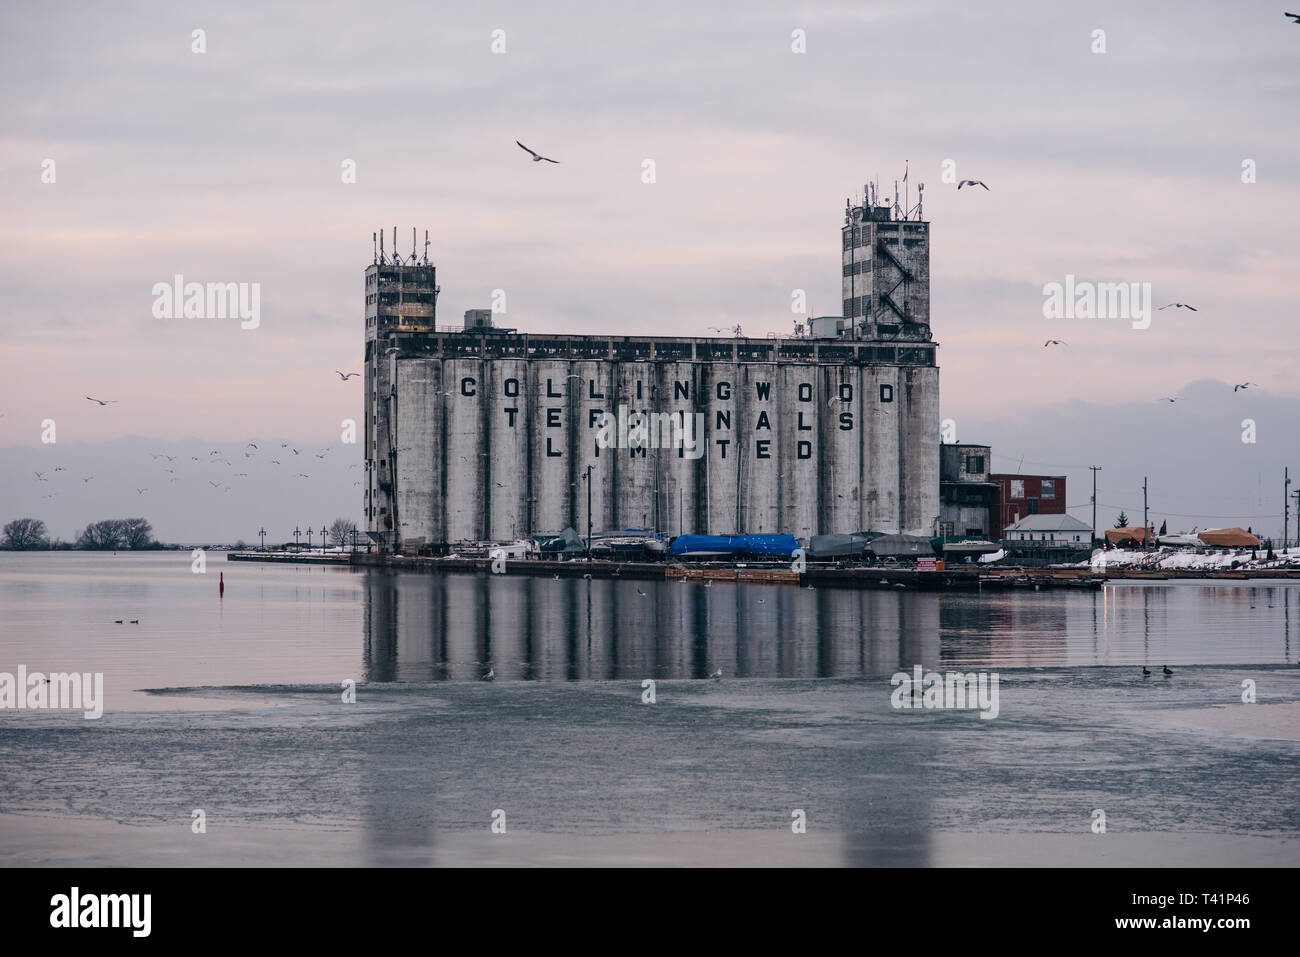 Collingwood terminals lake front, Ontario, Canada Stock Photo